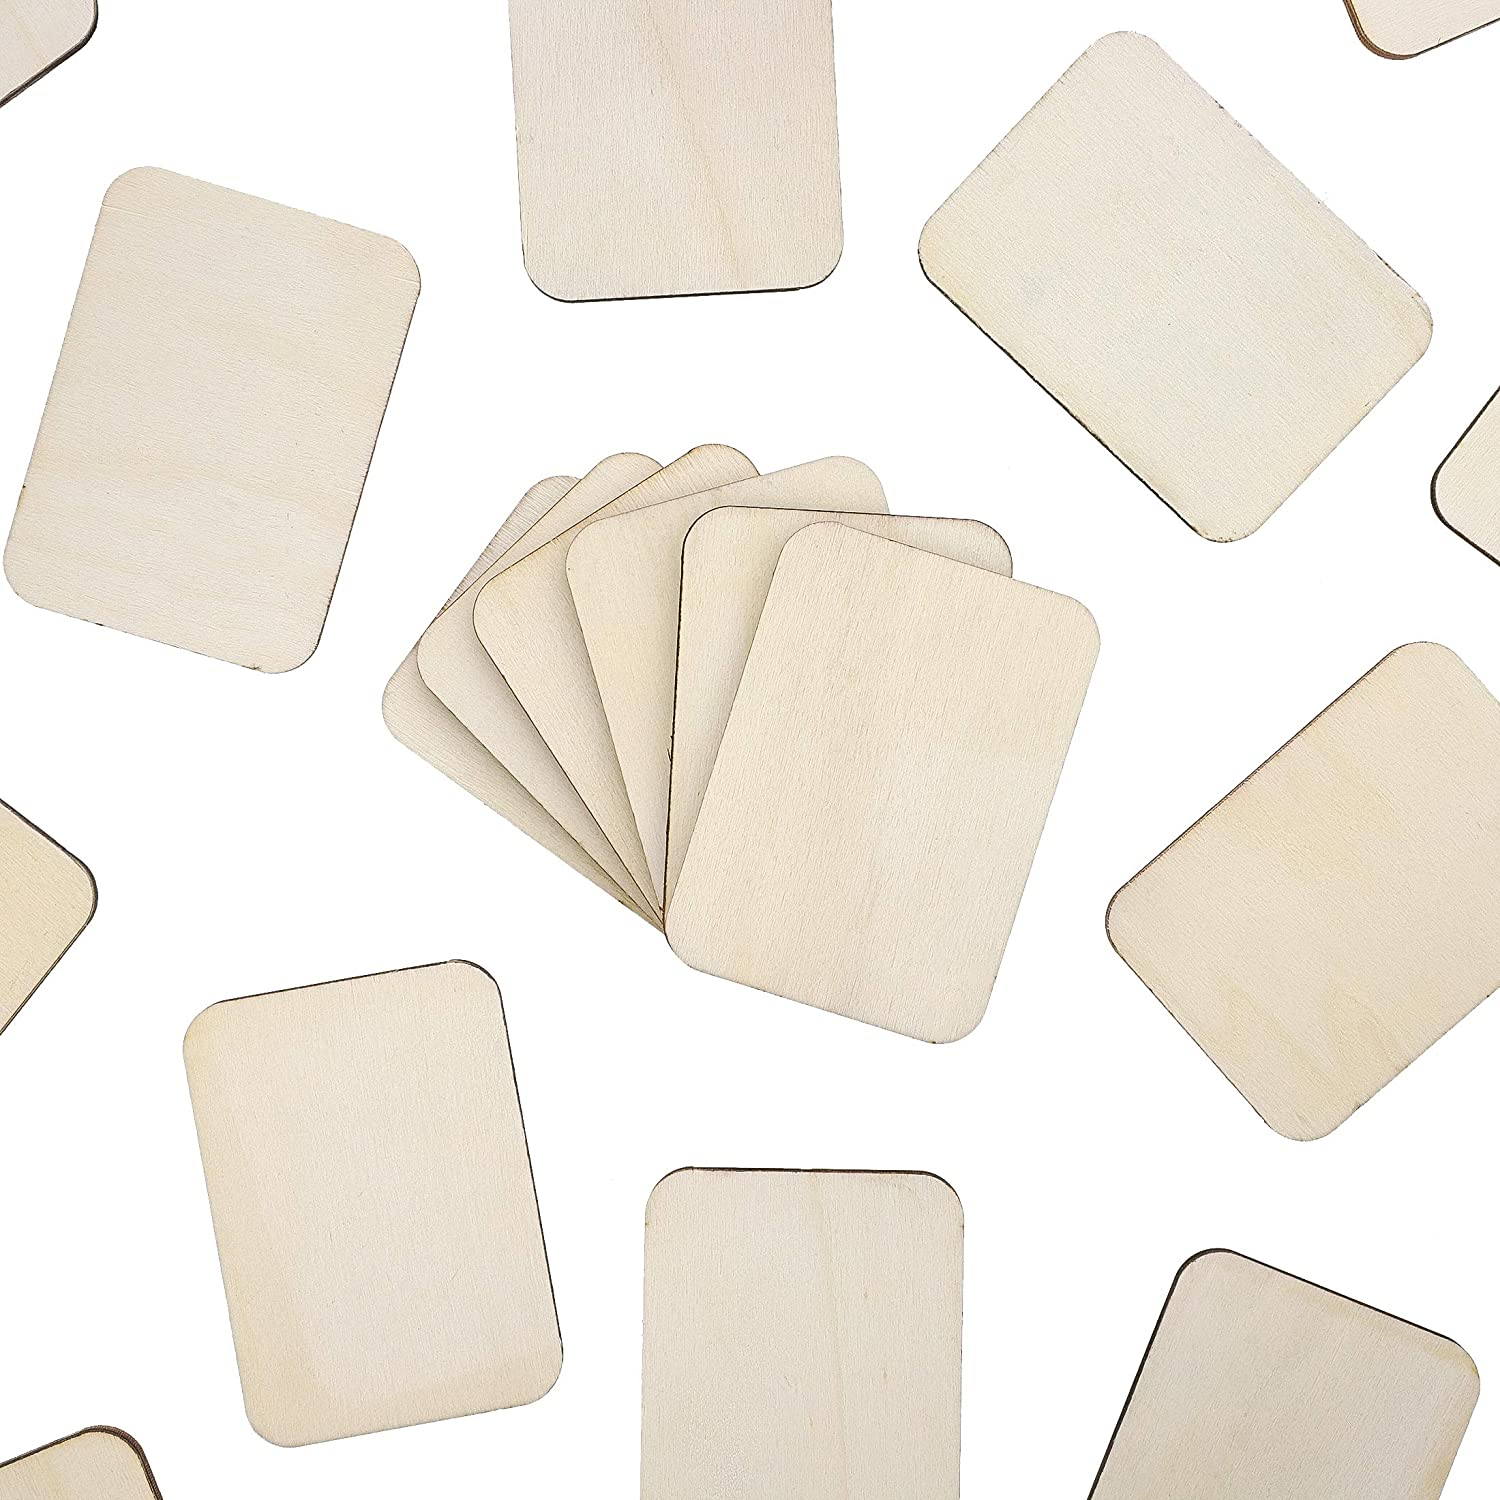 2 x 1.5 Inches Bright Creations 120-Pack Unfinished Wood Square Cutout Pieces for DIY Crafts